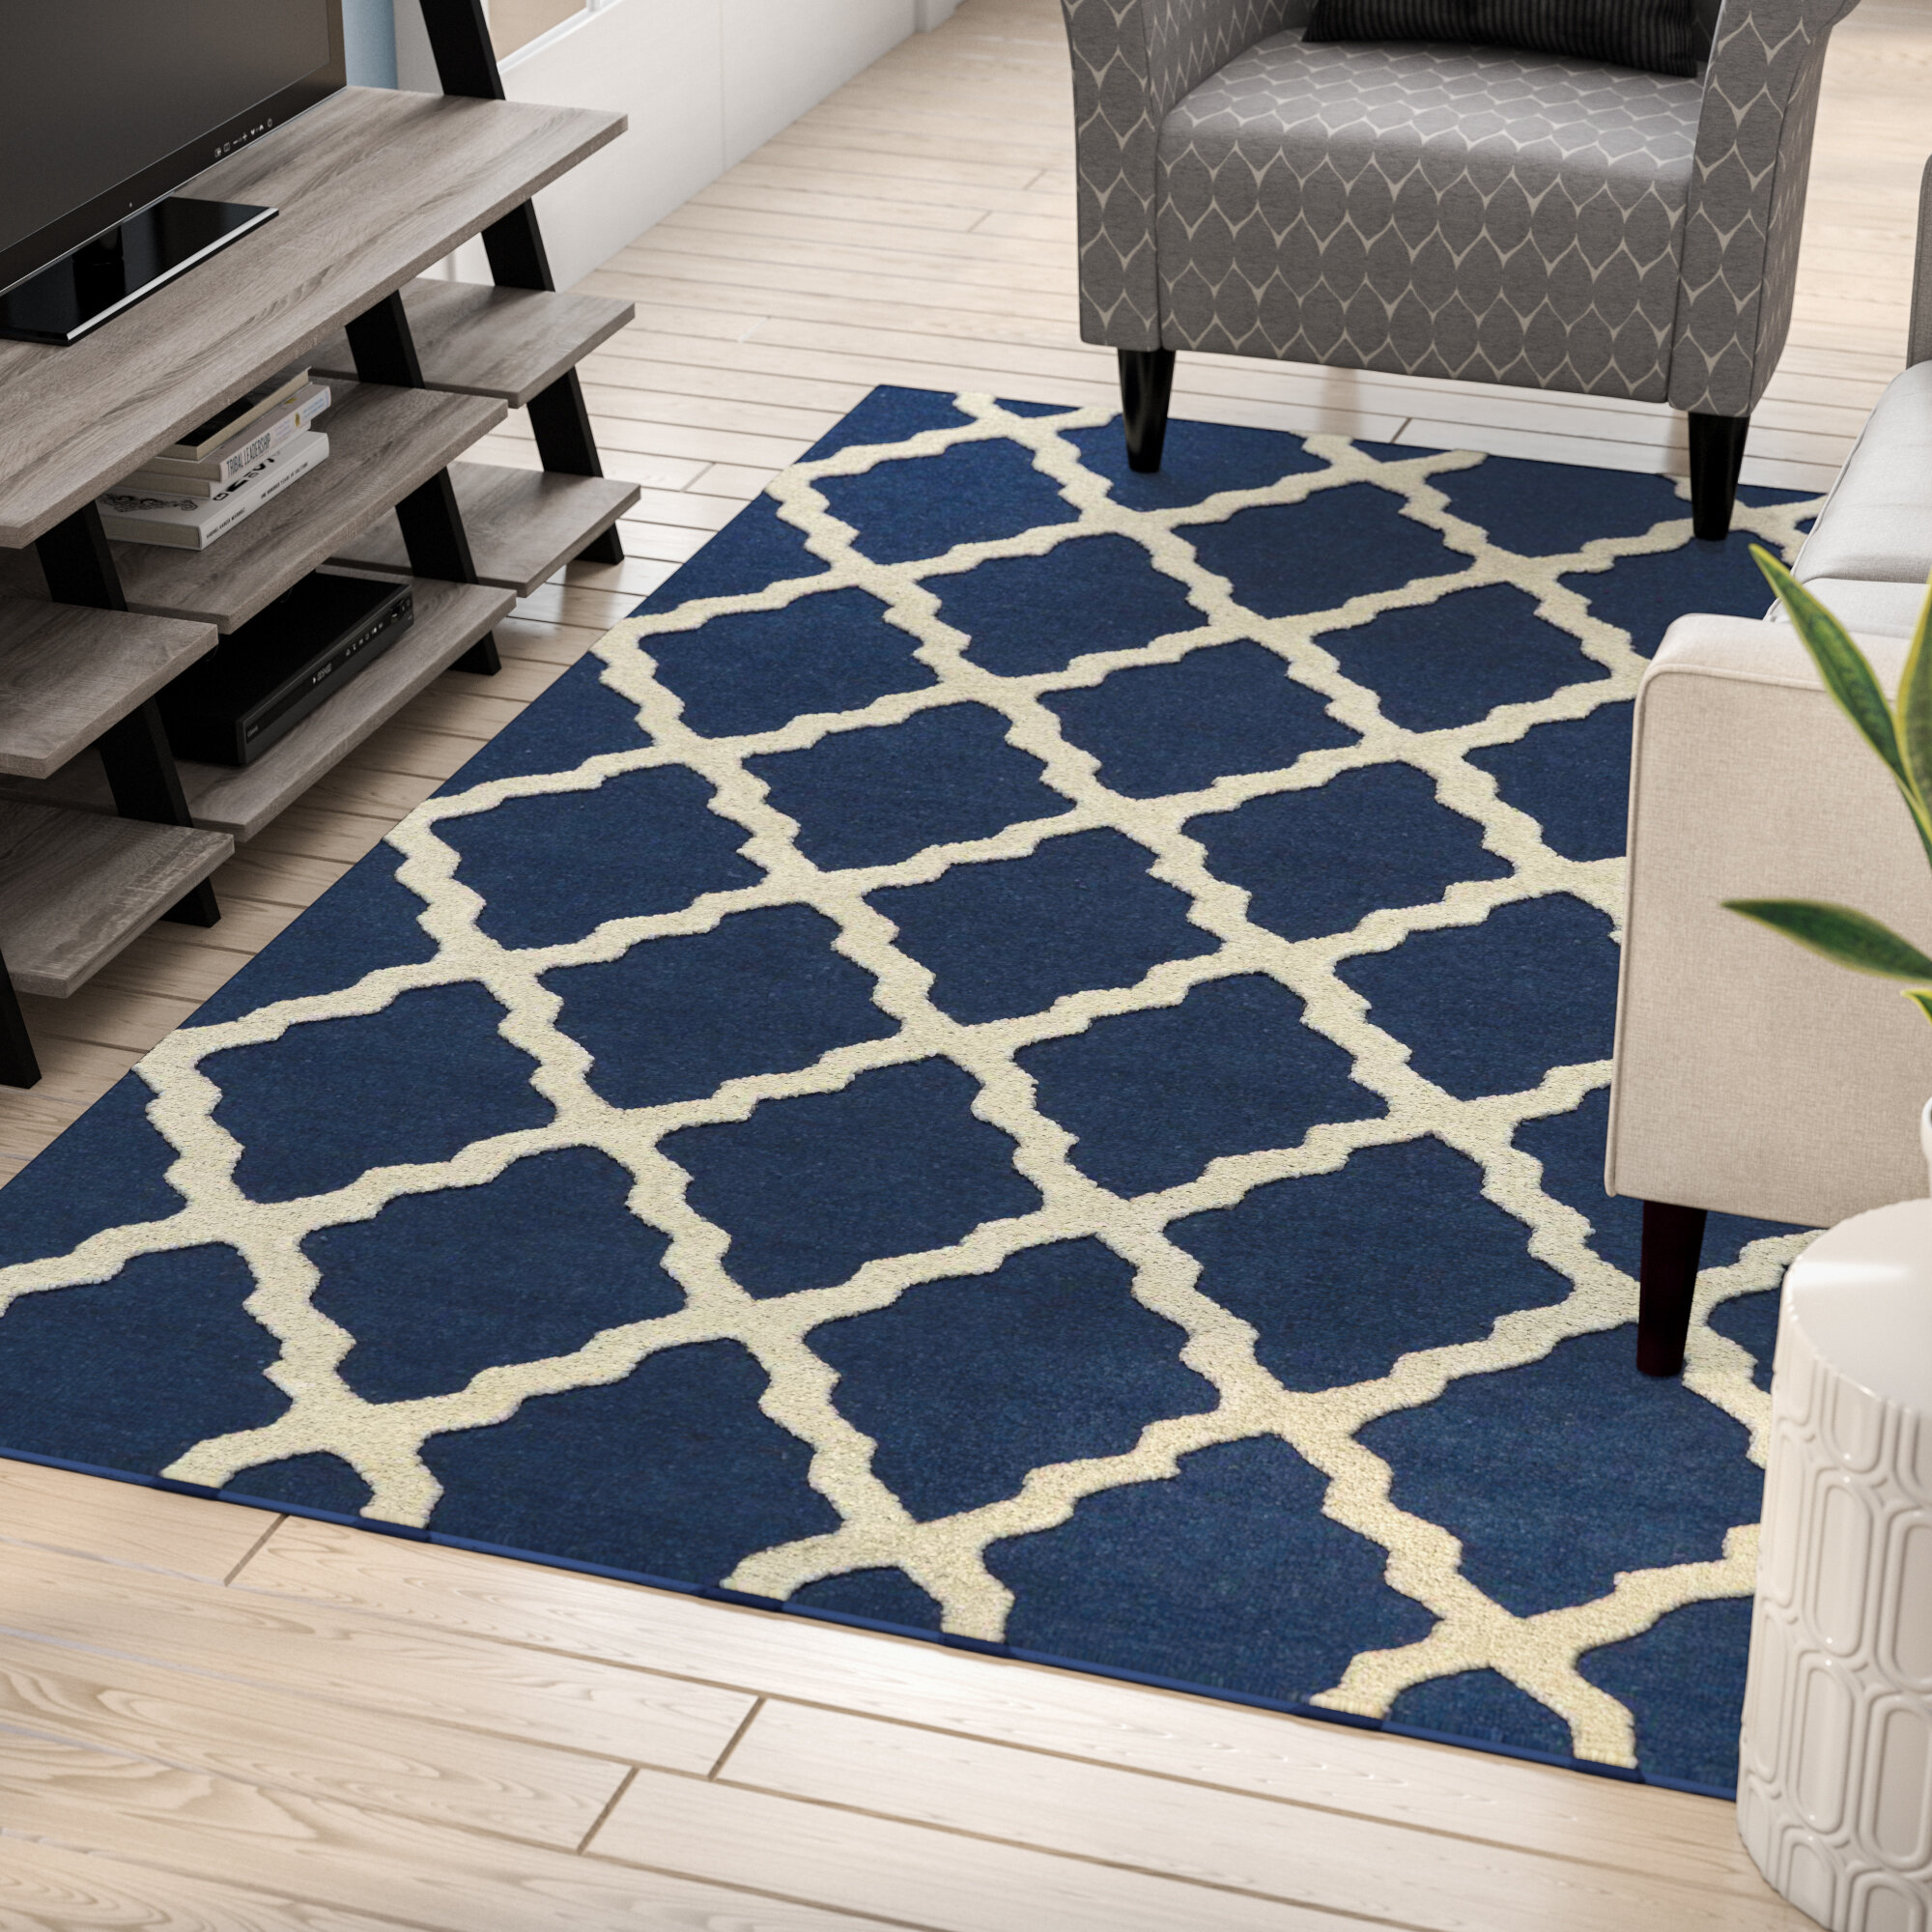 area free shed plush geometric rug beige vintage blue products moroccan modern minaret soft am trellis lattice